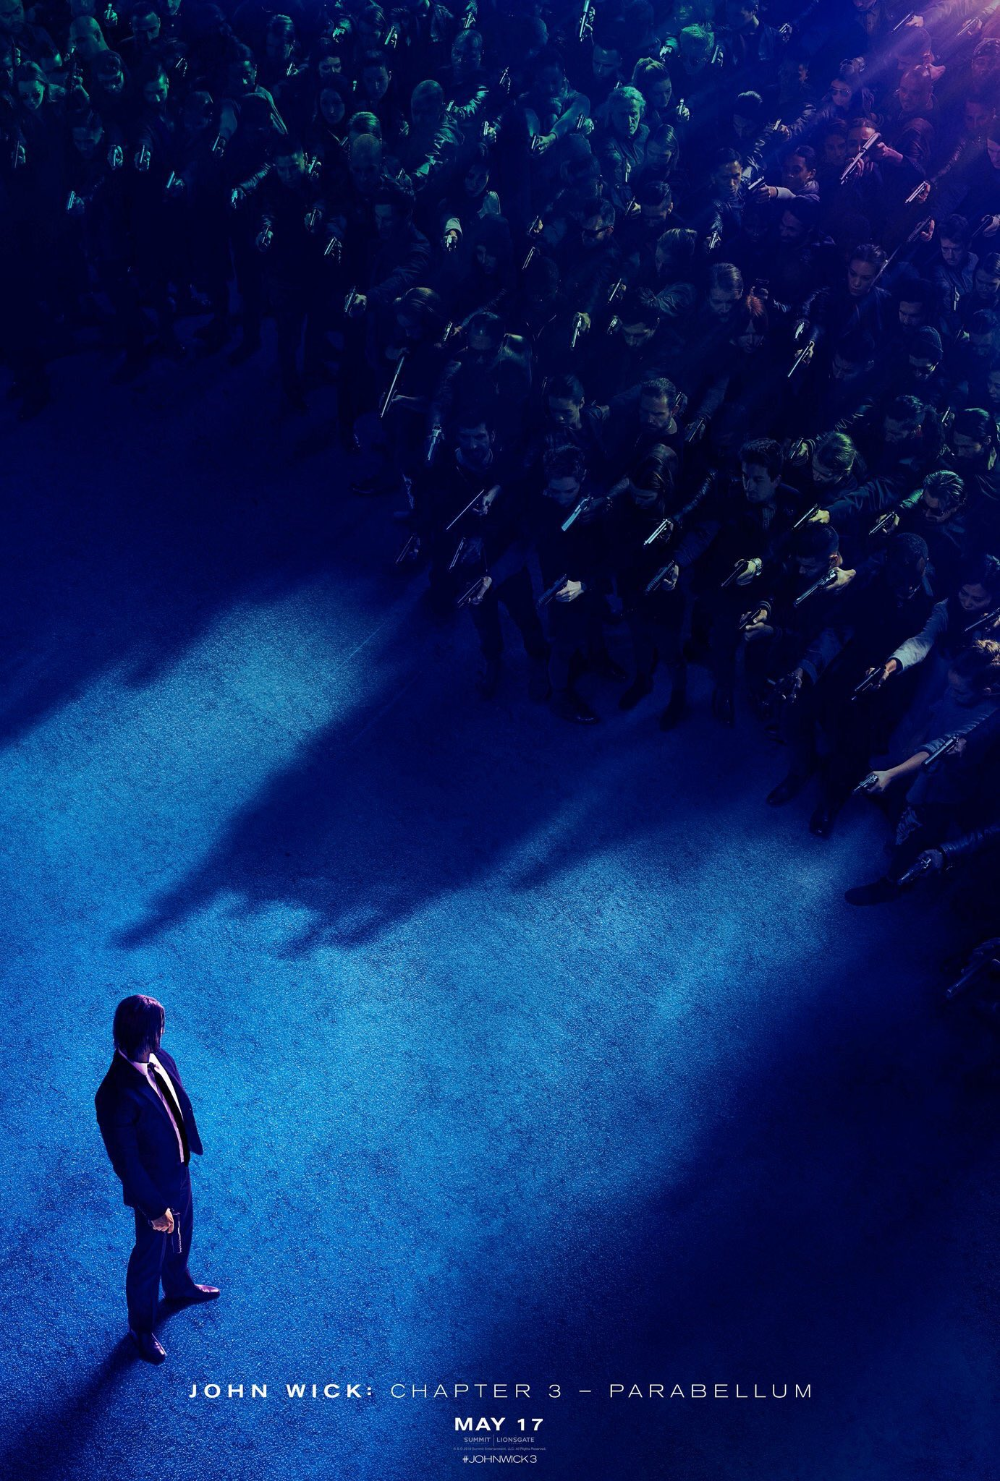 John Wick Chapter 3 On Twitter Keanu Reeves Movie Wallpapers Movie Posters